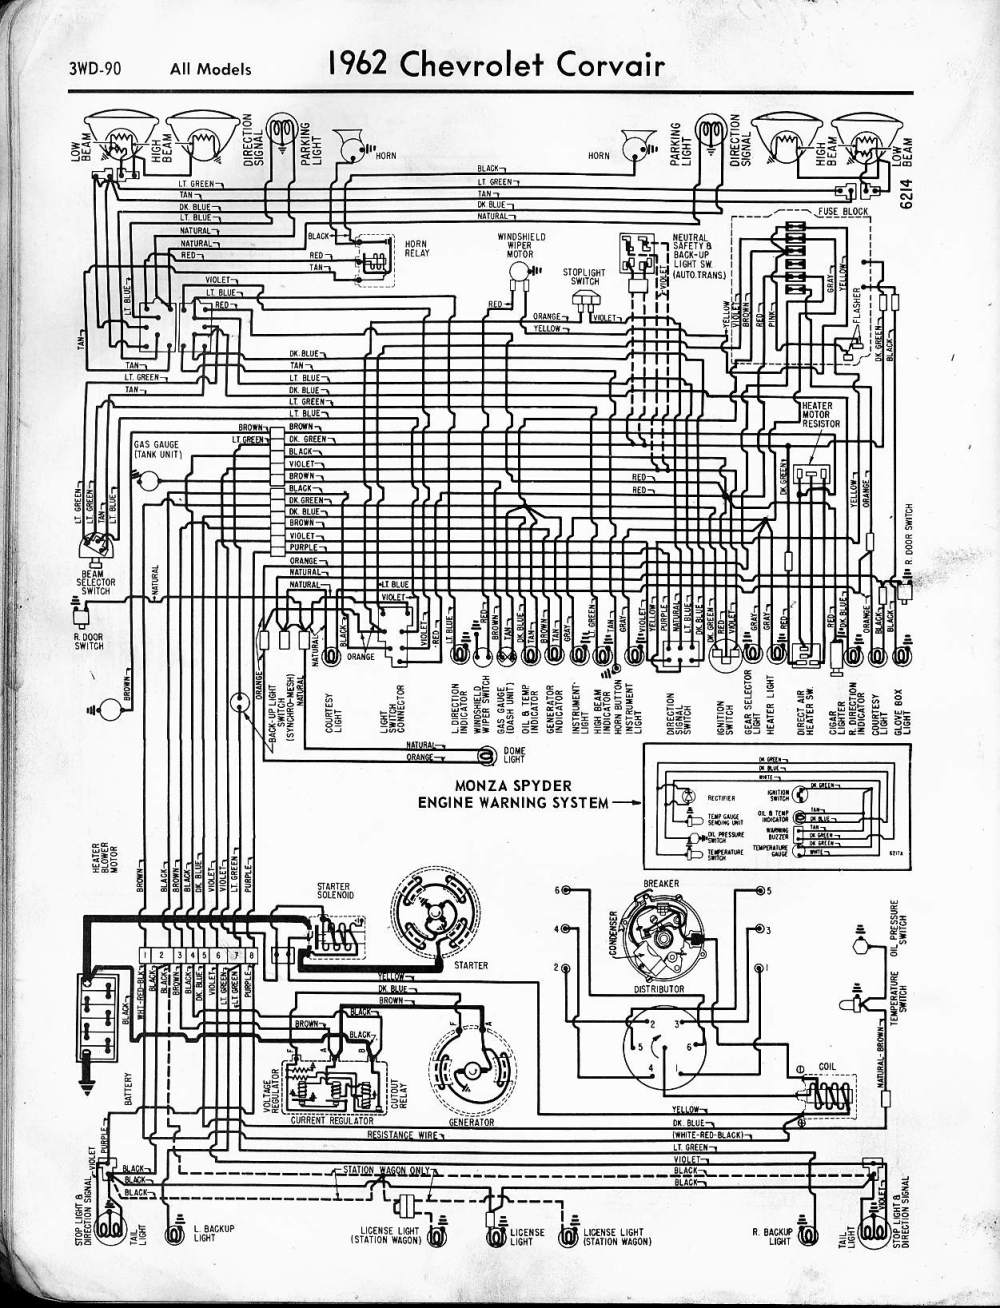 medium resolution of 1965 corvair wiring diagram wiring diagram blog 1965 corvair wiring diagram wiring diagram user 1965 corvair